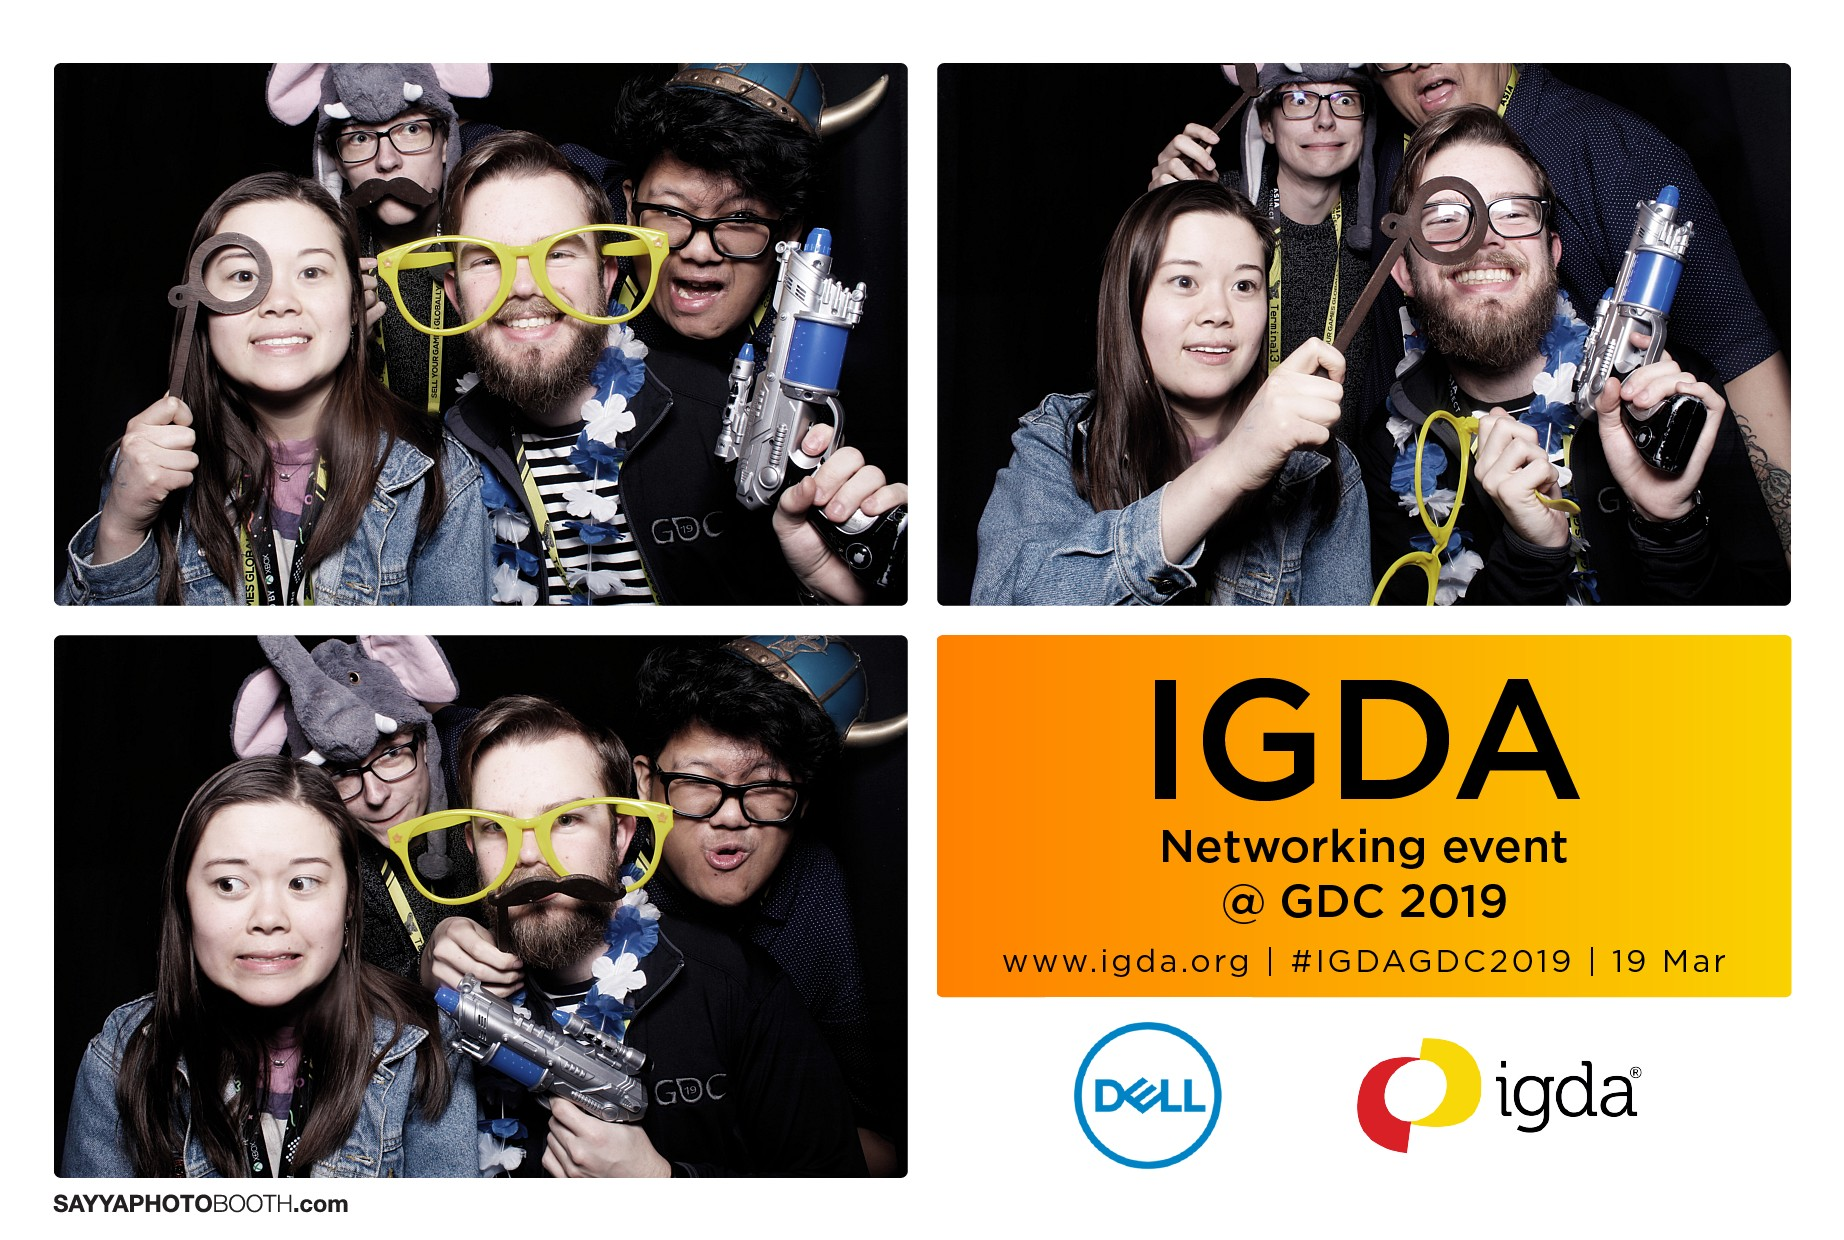 IGDA @ GDC Networking Event